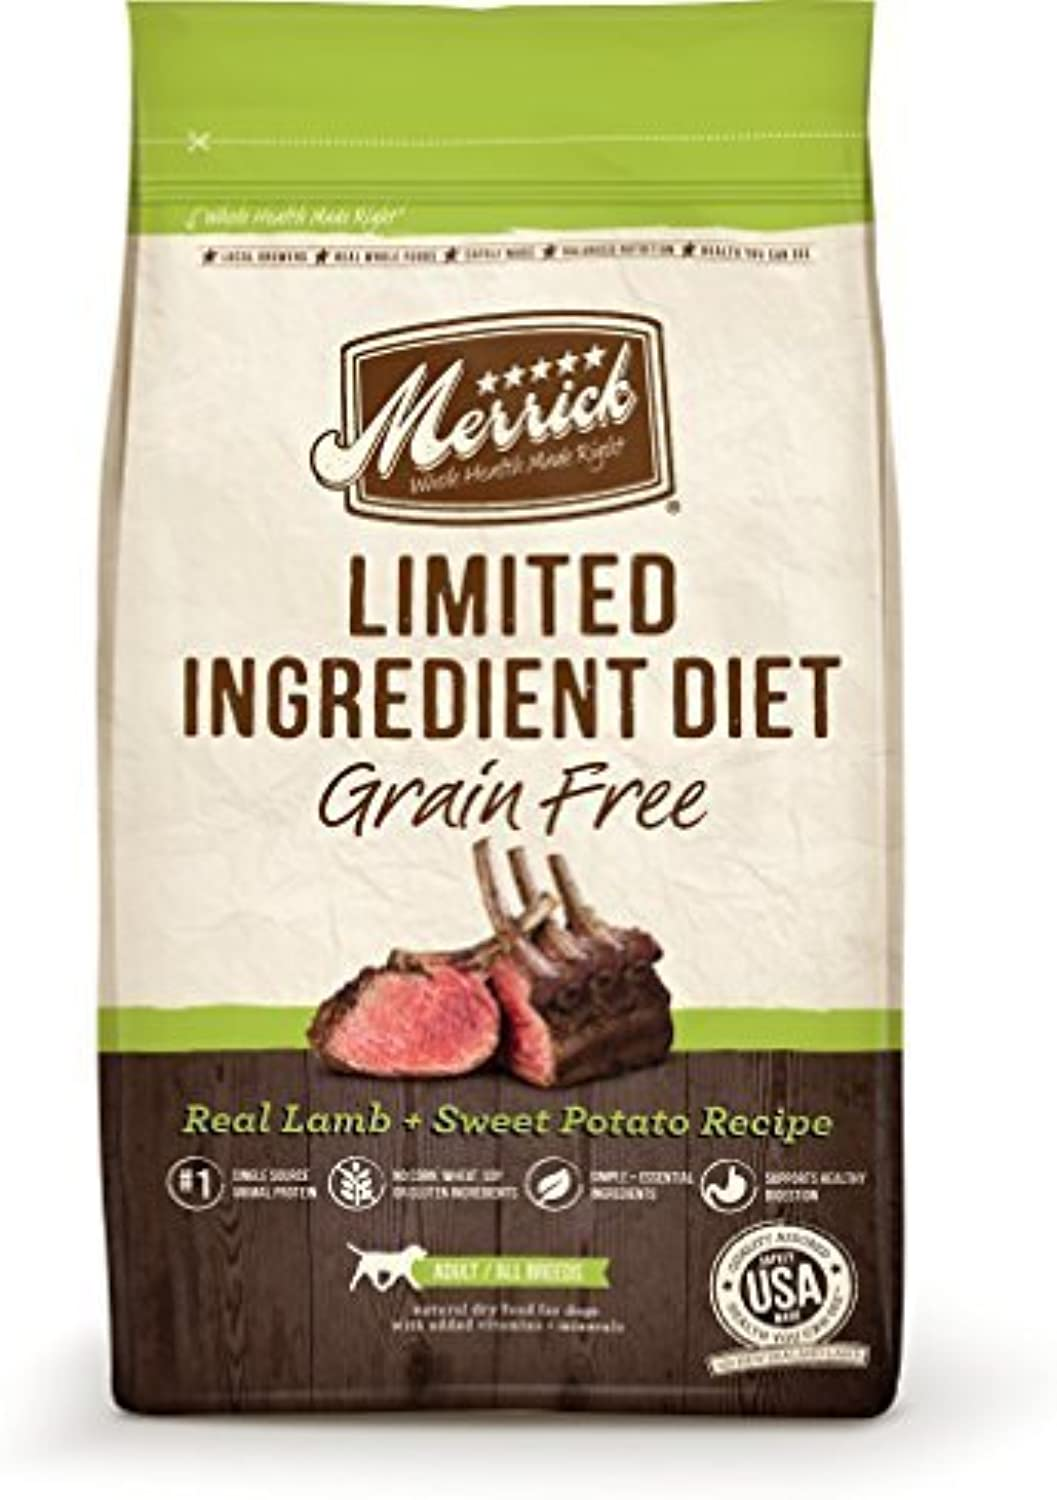 Merrick Limited Ingredient Diet Real Lamb and Sweet Potato Recipe Pet Food, 4Pound by Merrick